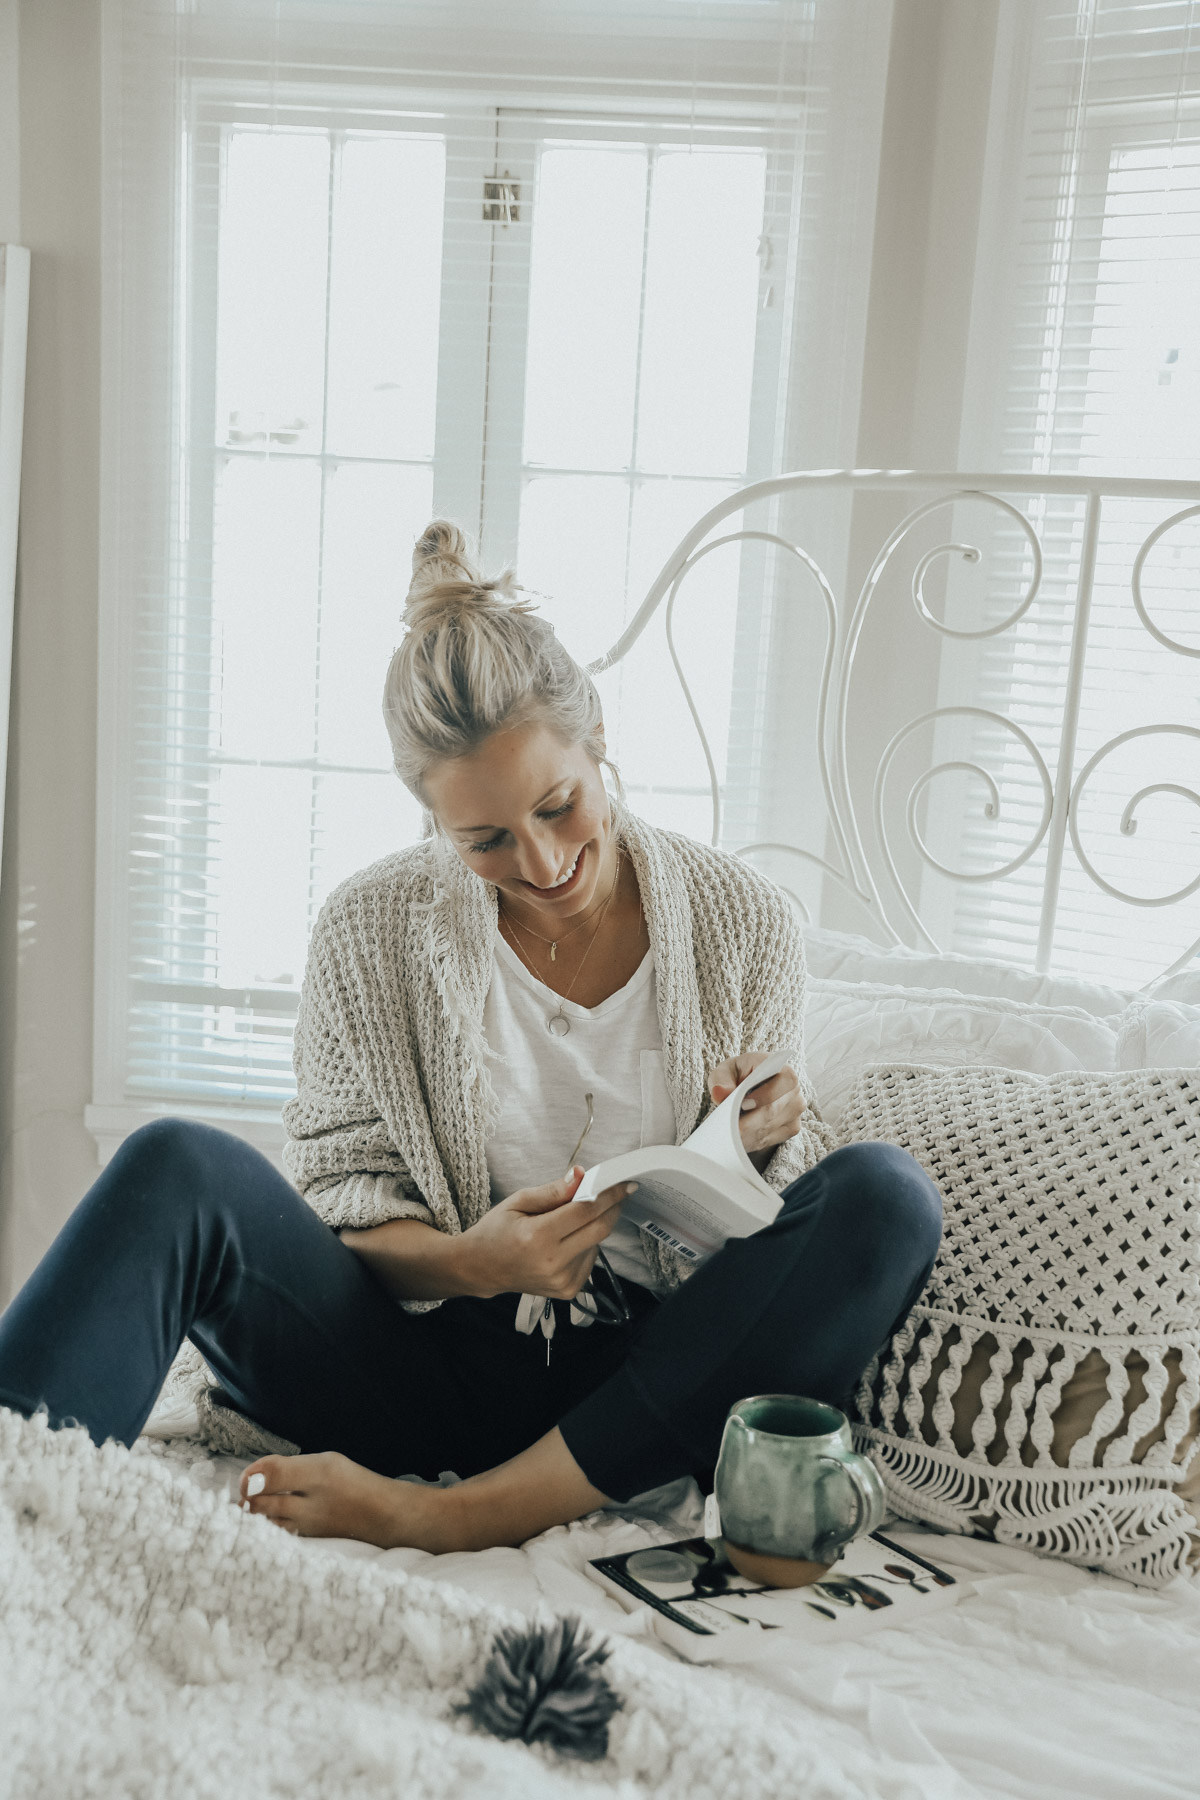 The Best Books for Personal Growth (That Aren't Self-Help)